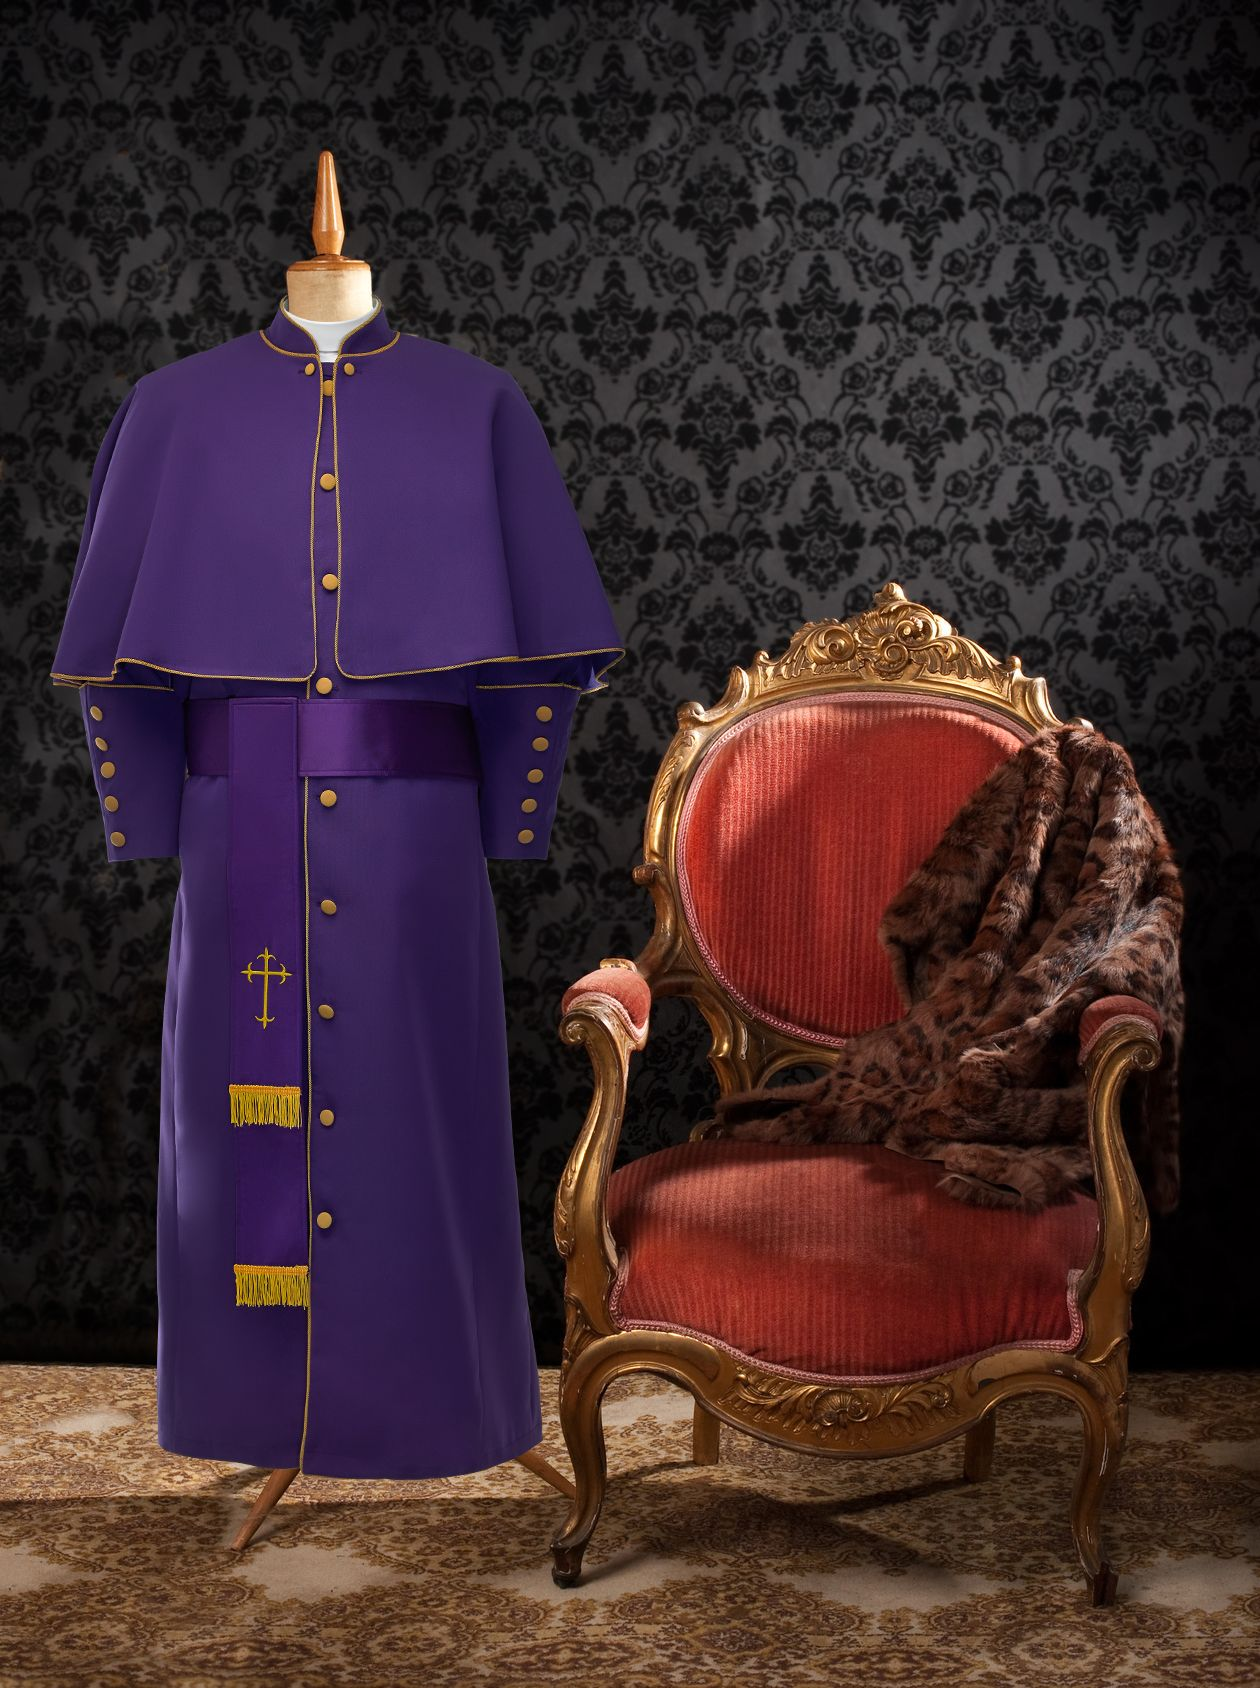 174 M. Limited Exclusive Men's Pastor/Clergy Robe Purple/Gold Luxury Ensemble